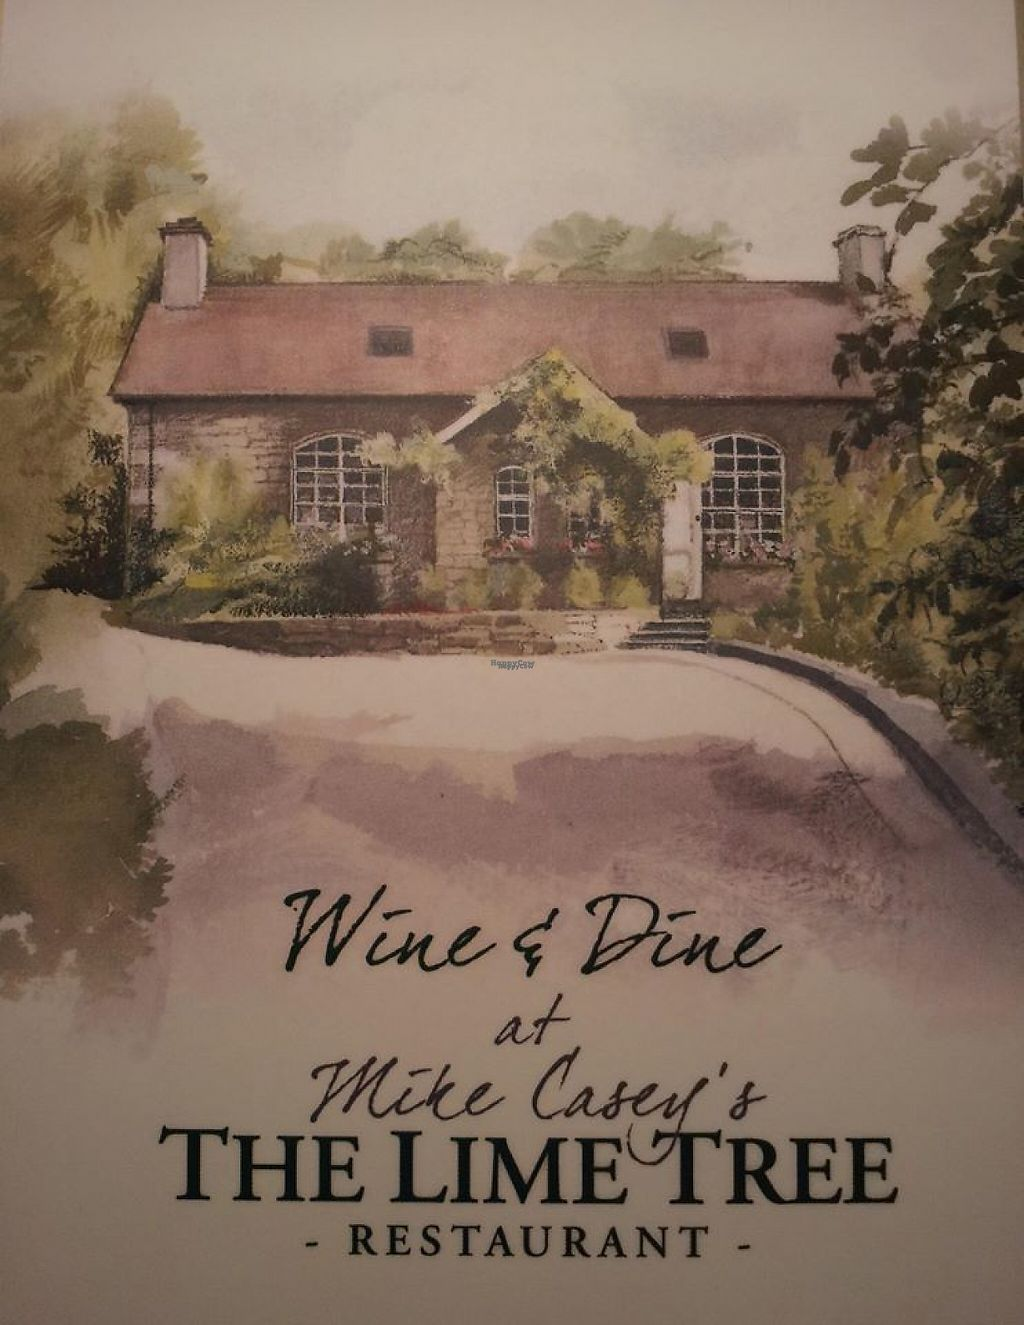 """Photo of Lime Tree Restaurant  by <a href=""""/members/profile/community"""">community</a> <br/>The Lime Tree Restaurant <br/> January 27, 2017  - <a href='/contact/abuse/image/84640/217921'>Report</a>"""